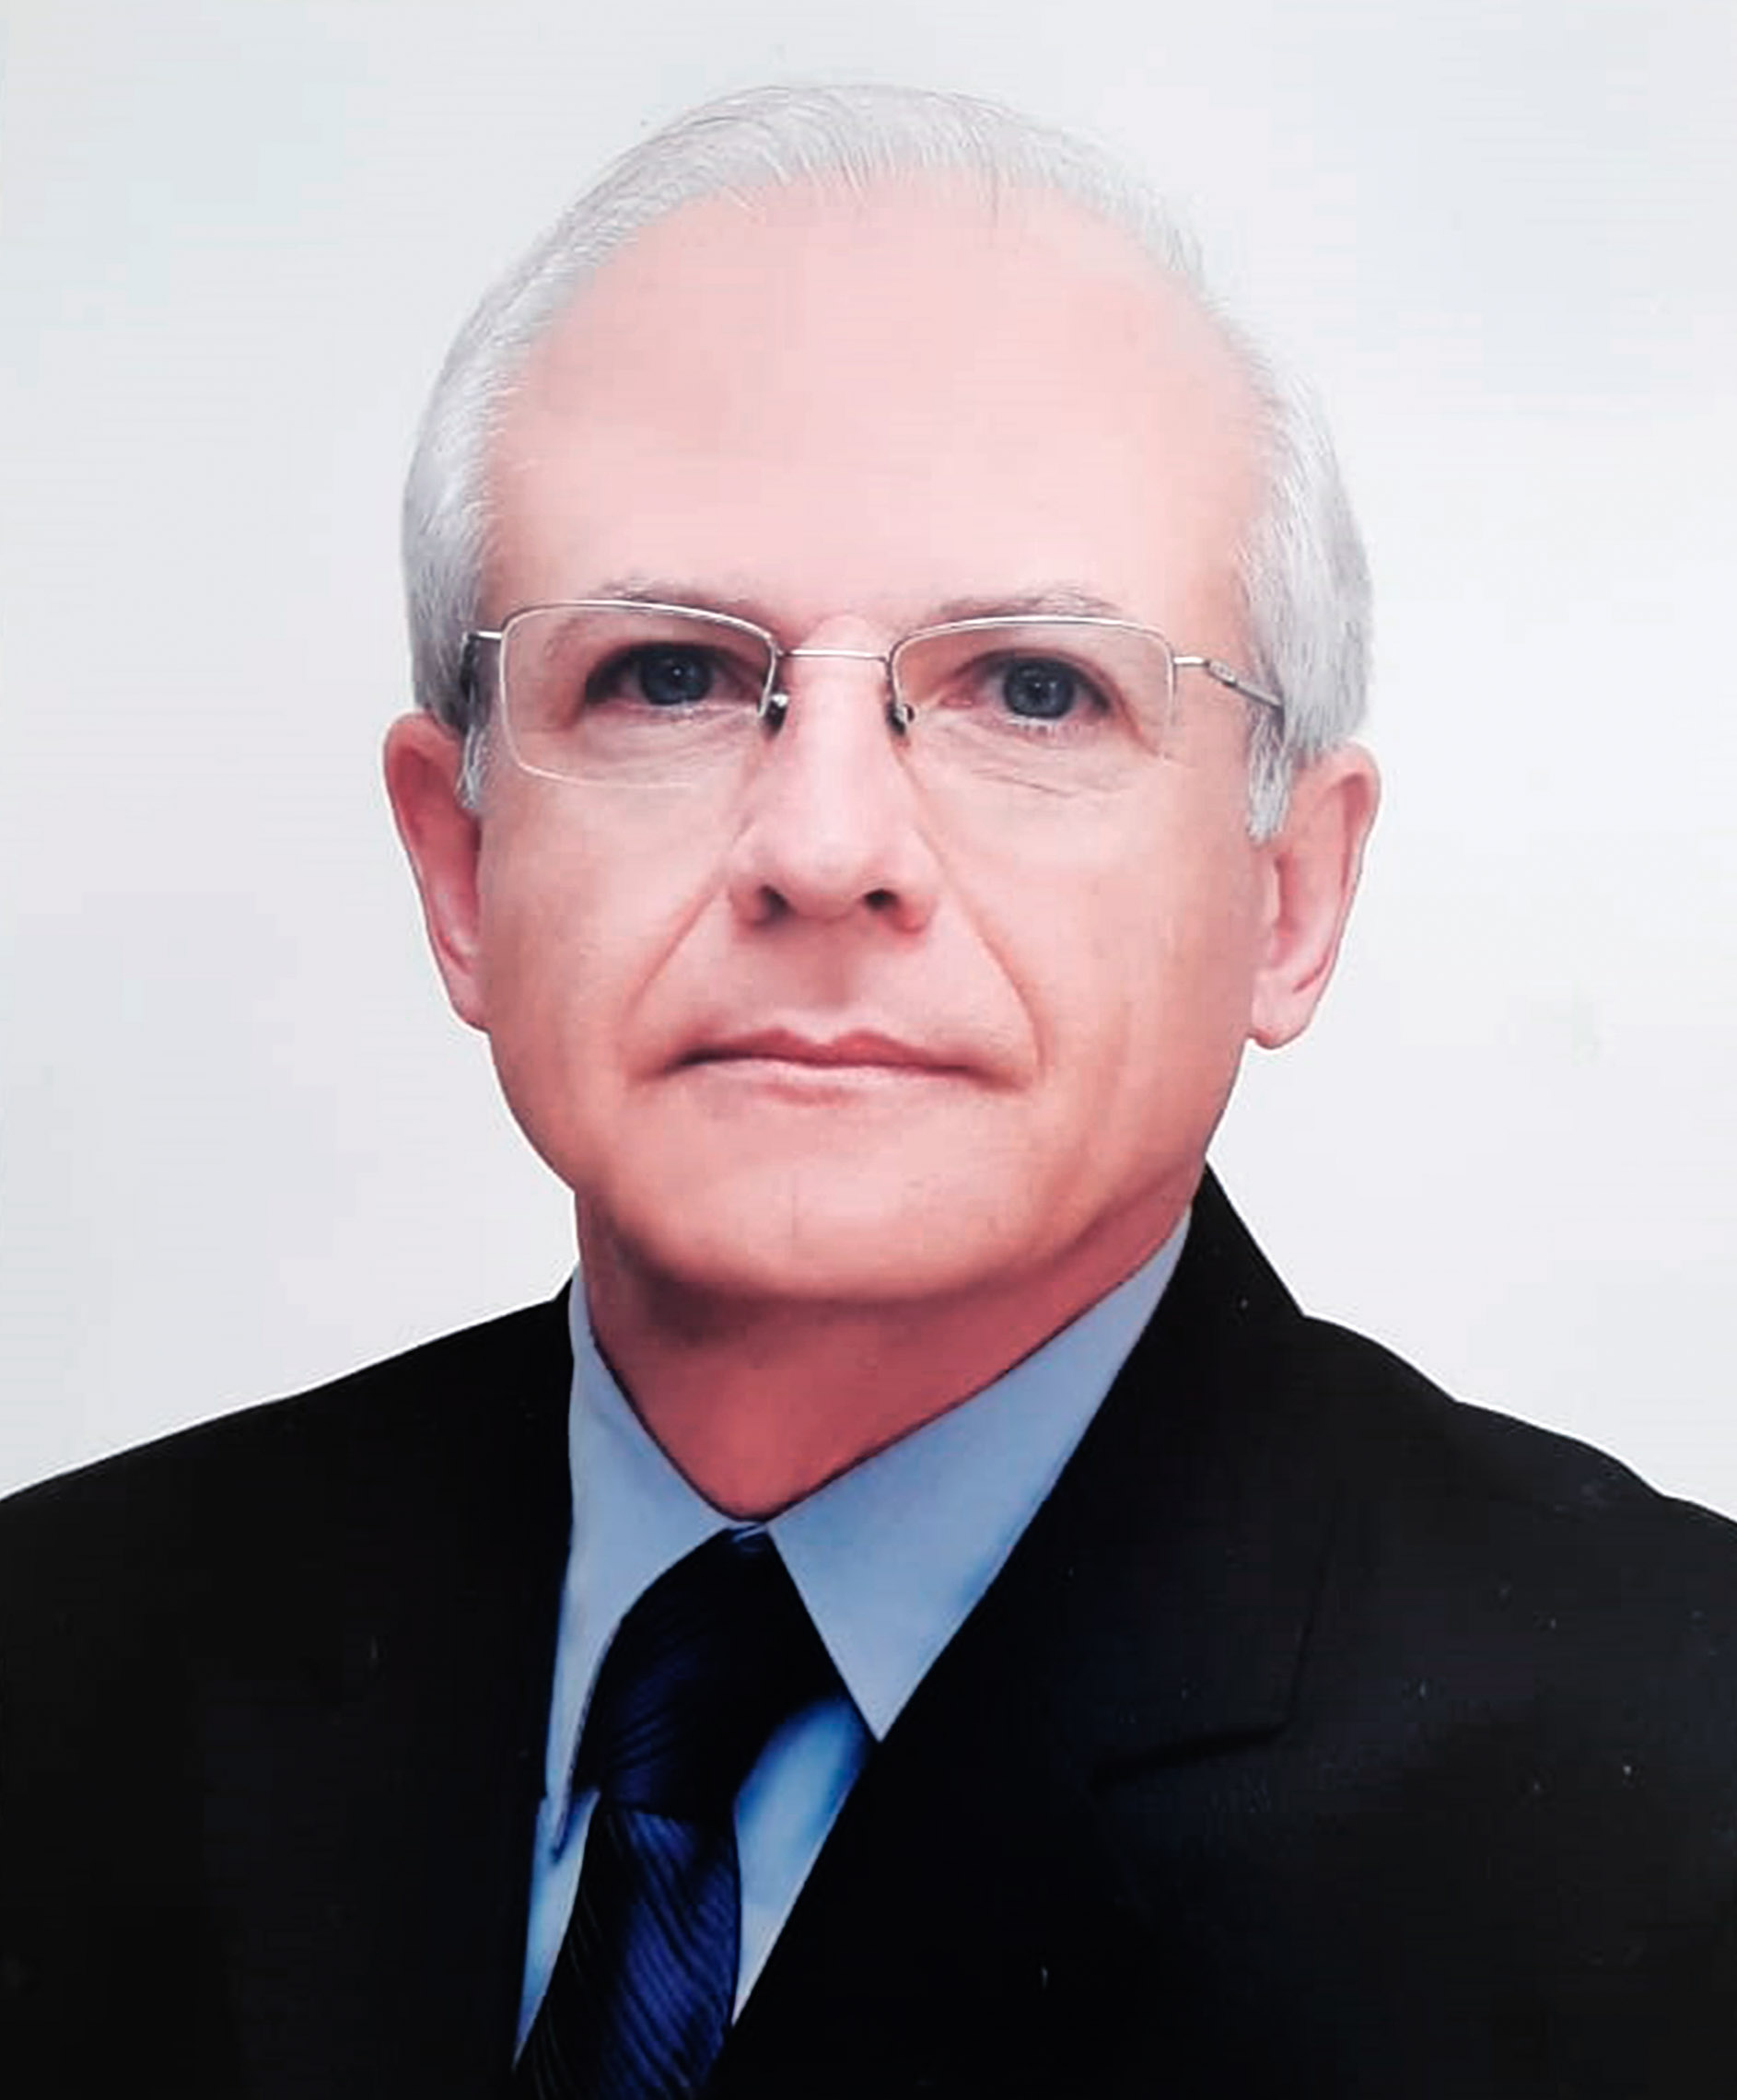 Luis Antônio Martins Sanches